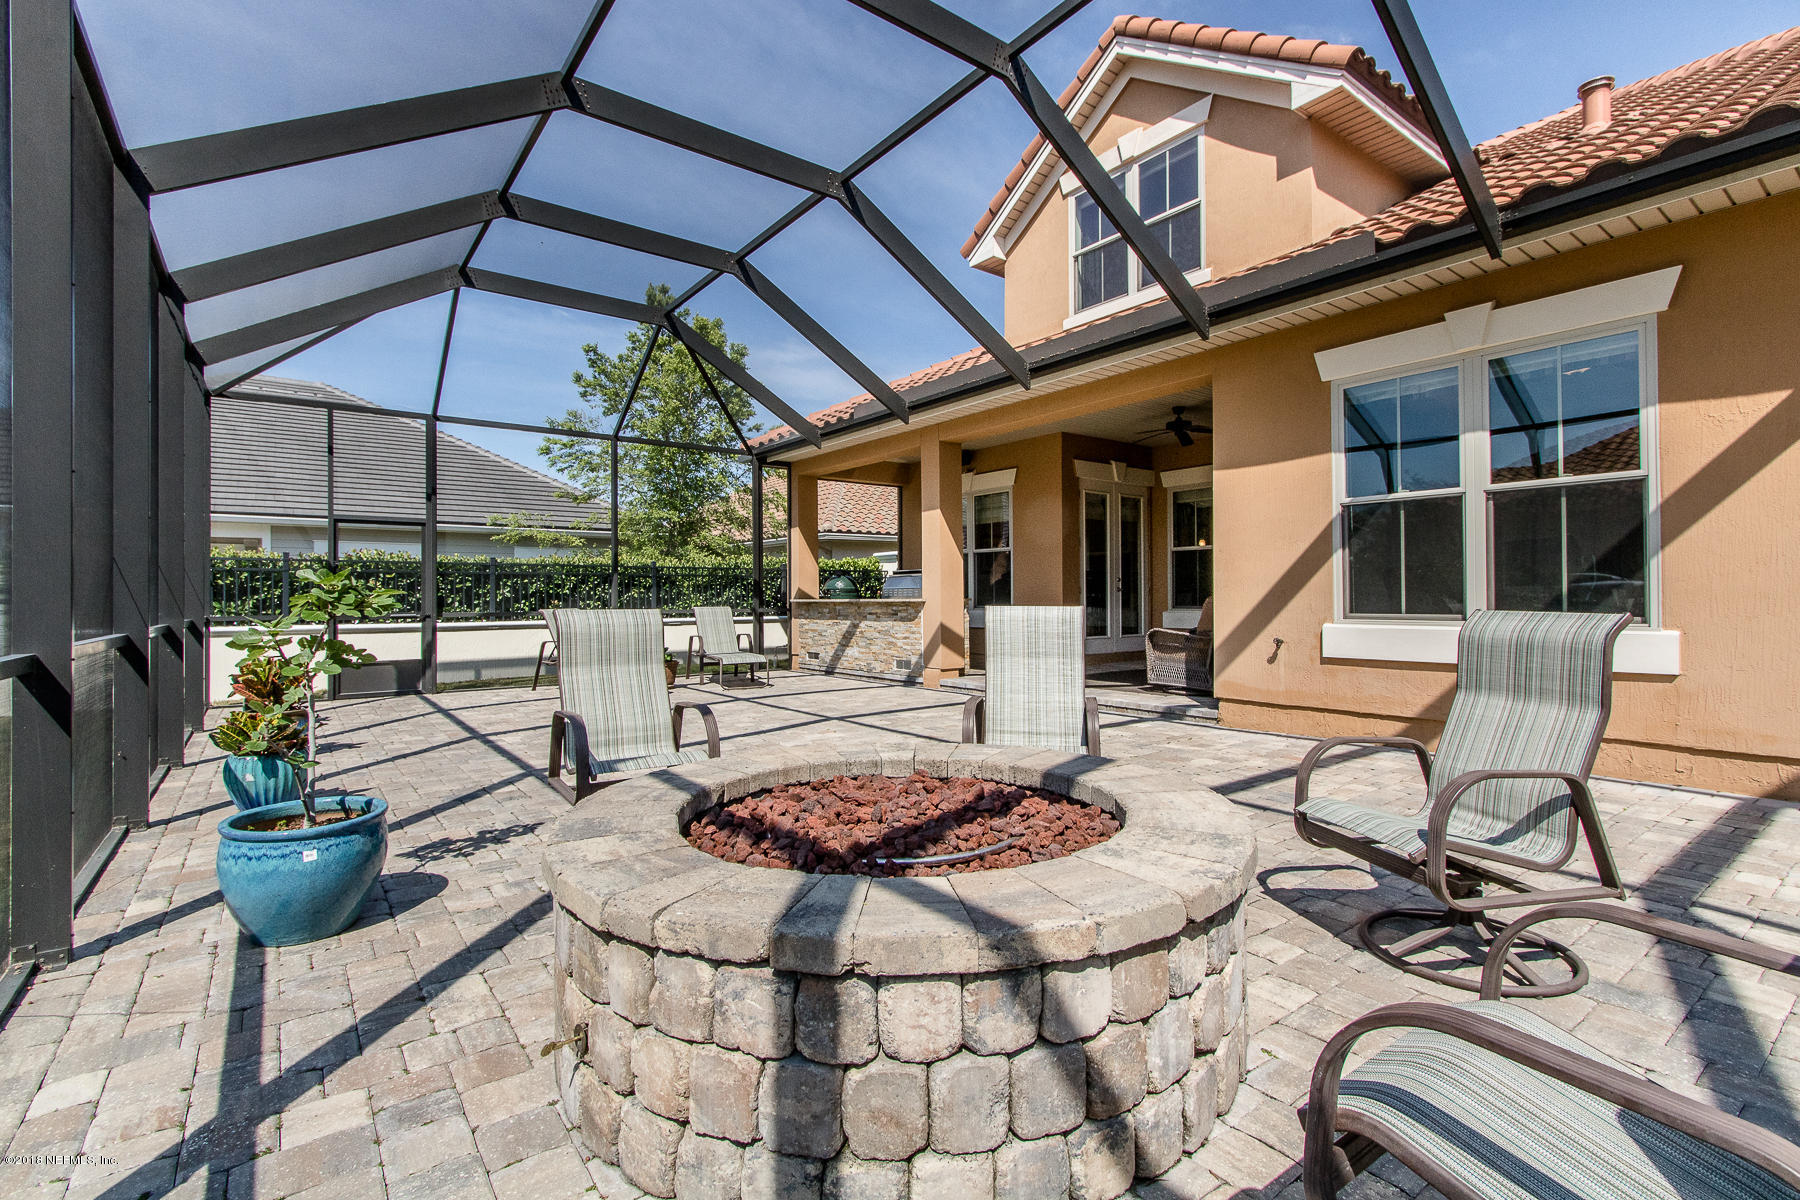 1334 SUNSET VIEW, JACKSONVILLE, FLORIDA 32207, 4 Bedrooms Bedrooms, ,3 BathroomsBathrooms,Residential - single family,For sale,SUNSET VIEW,934964